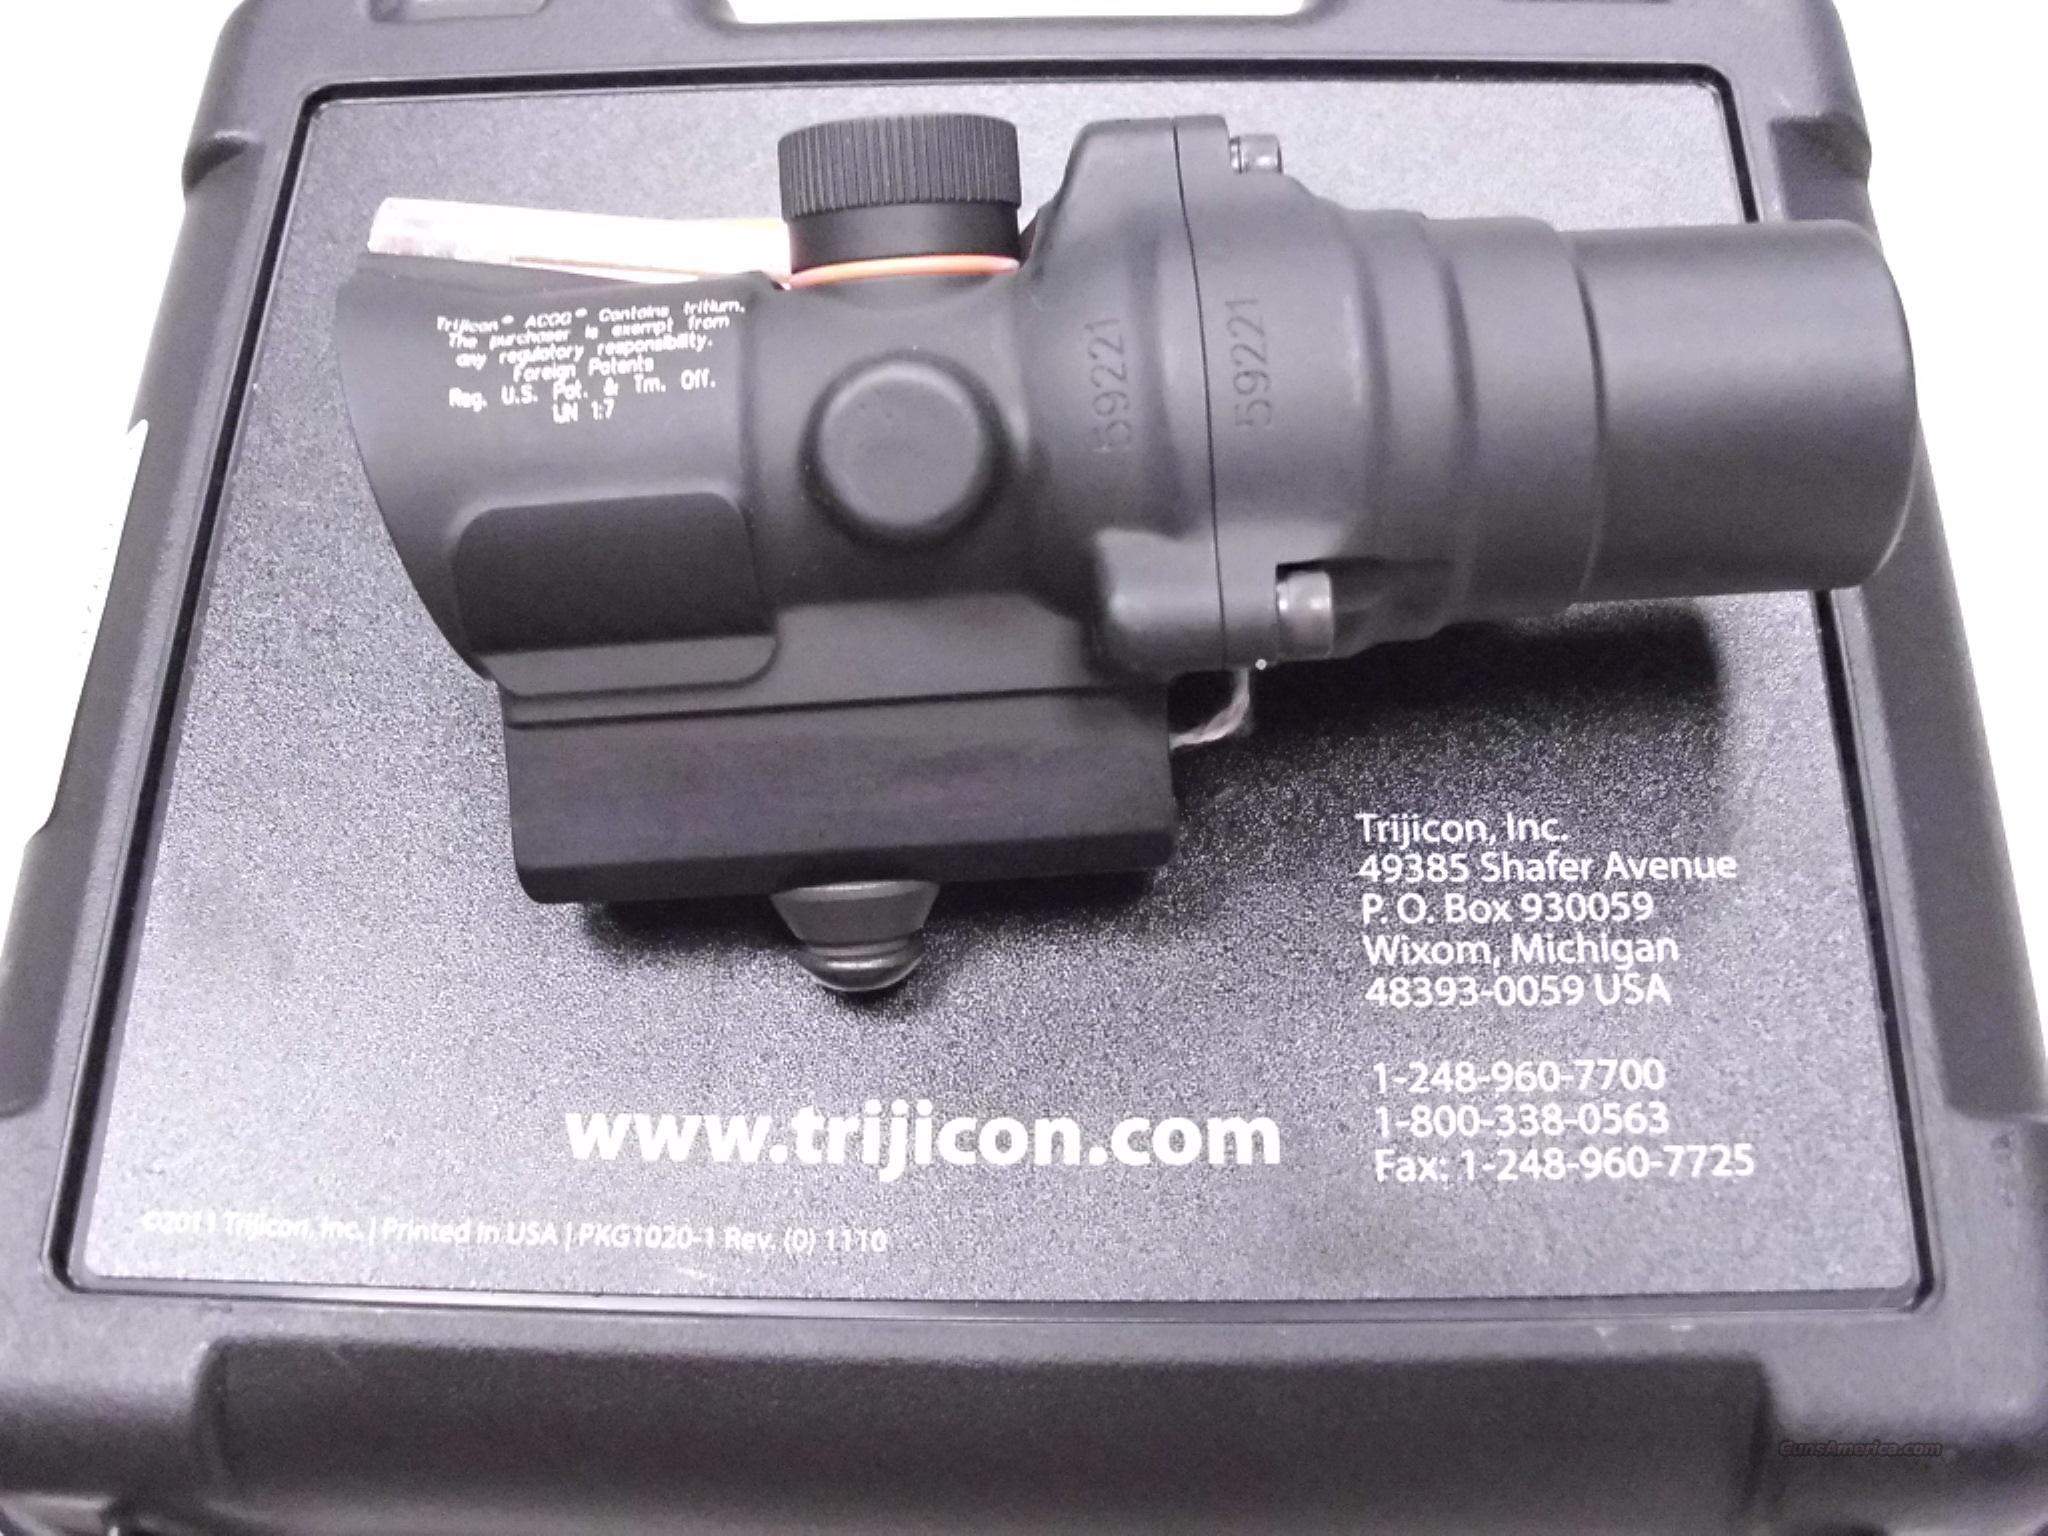 Trijicon ACOG TA44SG-10 M16 Base Housing Red NEW  Non-Guns > Scopes/Mounts/Rings & Optics > Tactical Scopes > Red Dot